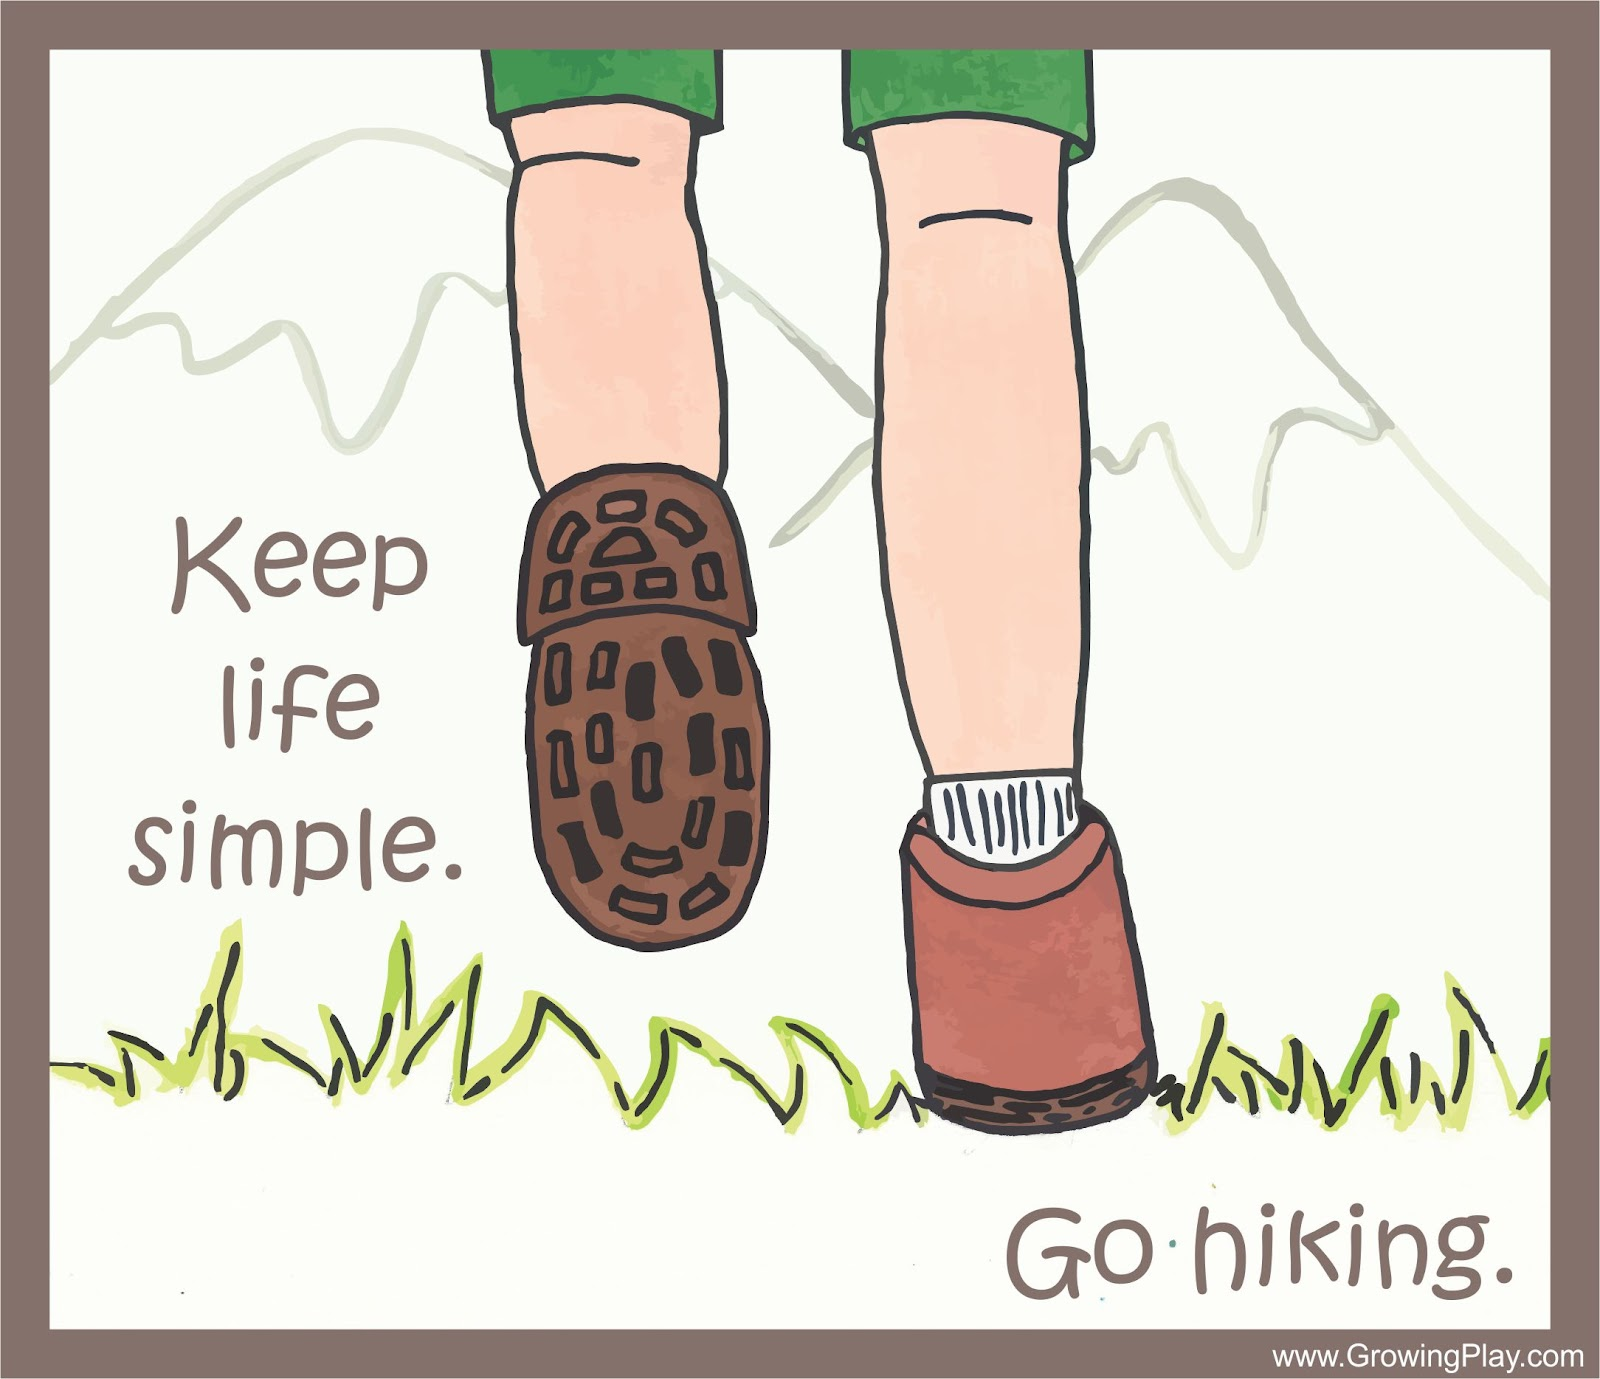 Growing play keep life simple go hiking for Minimalist living what to keep